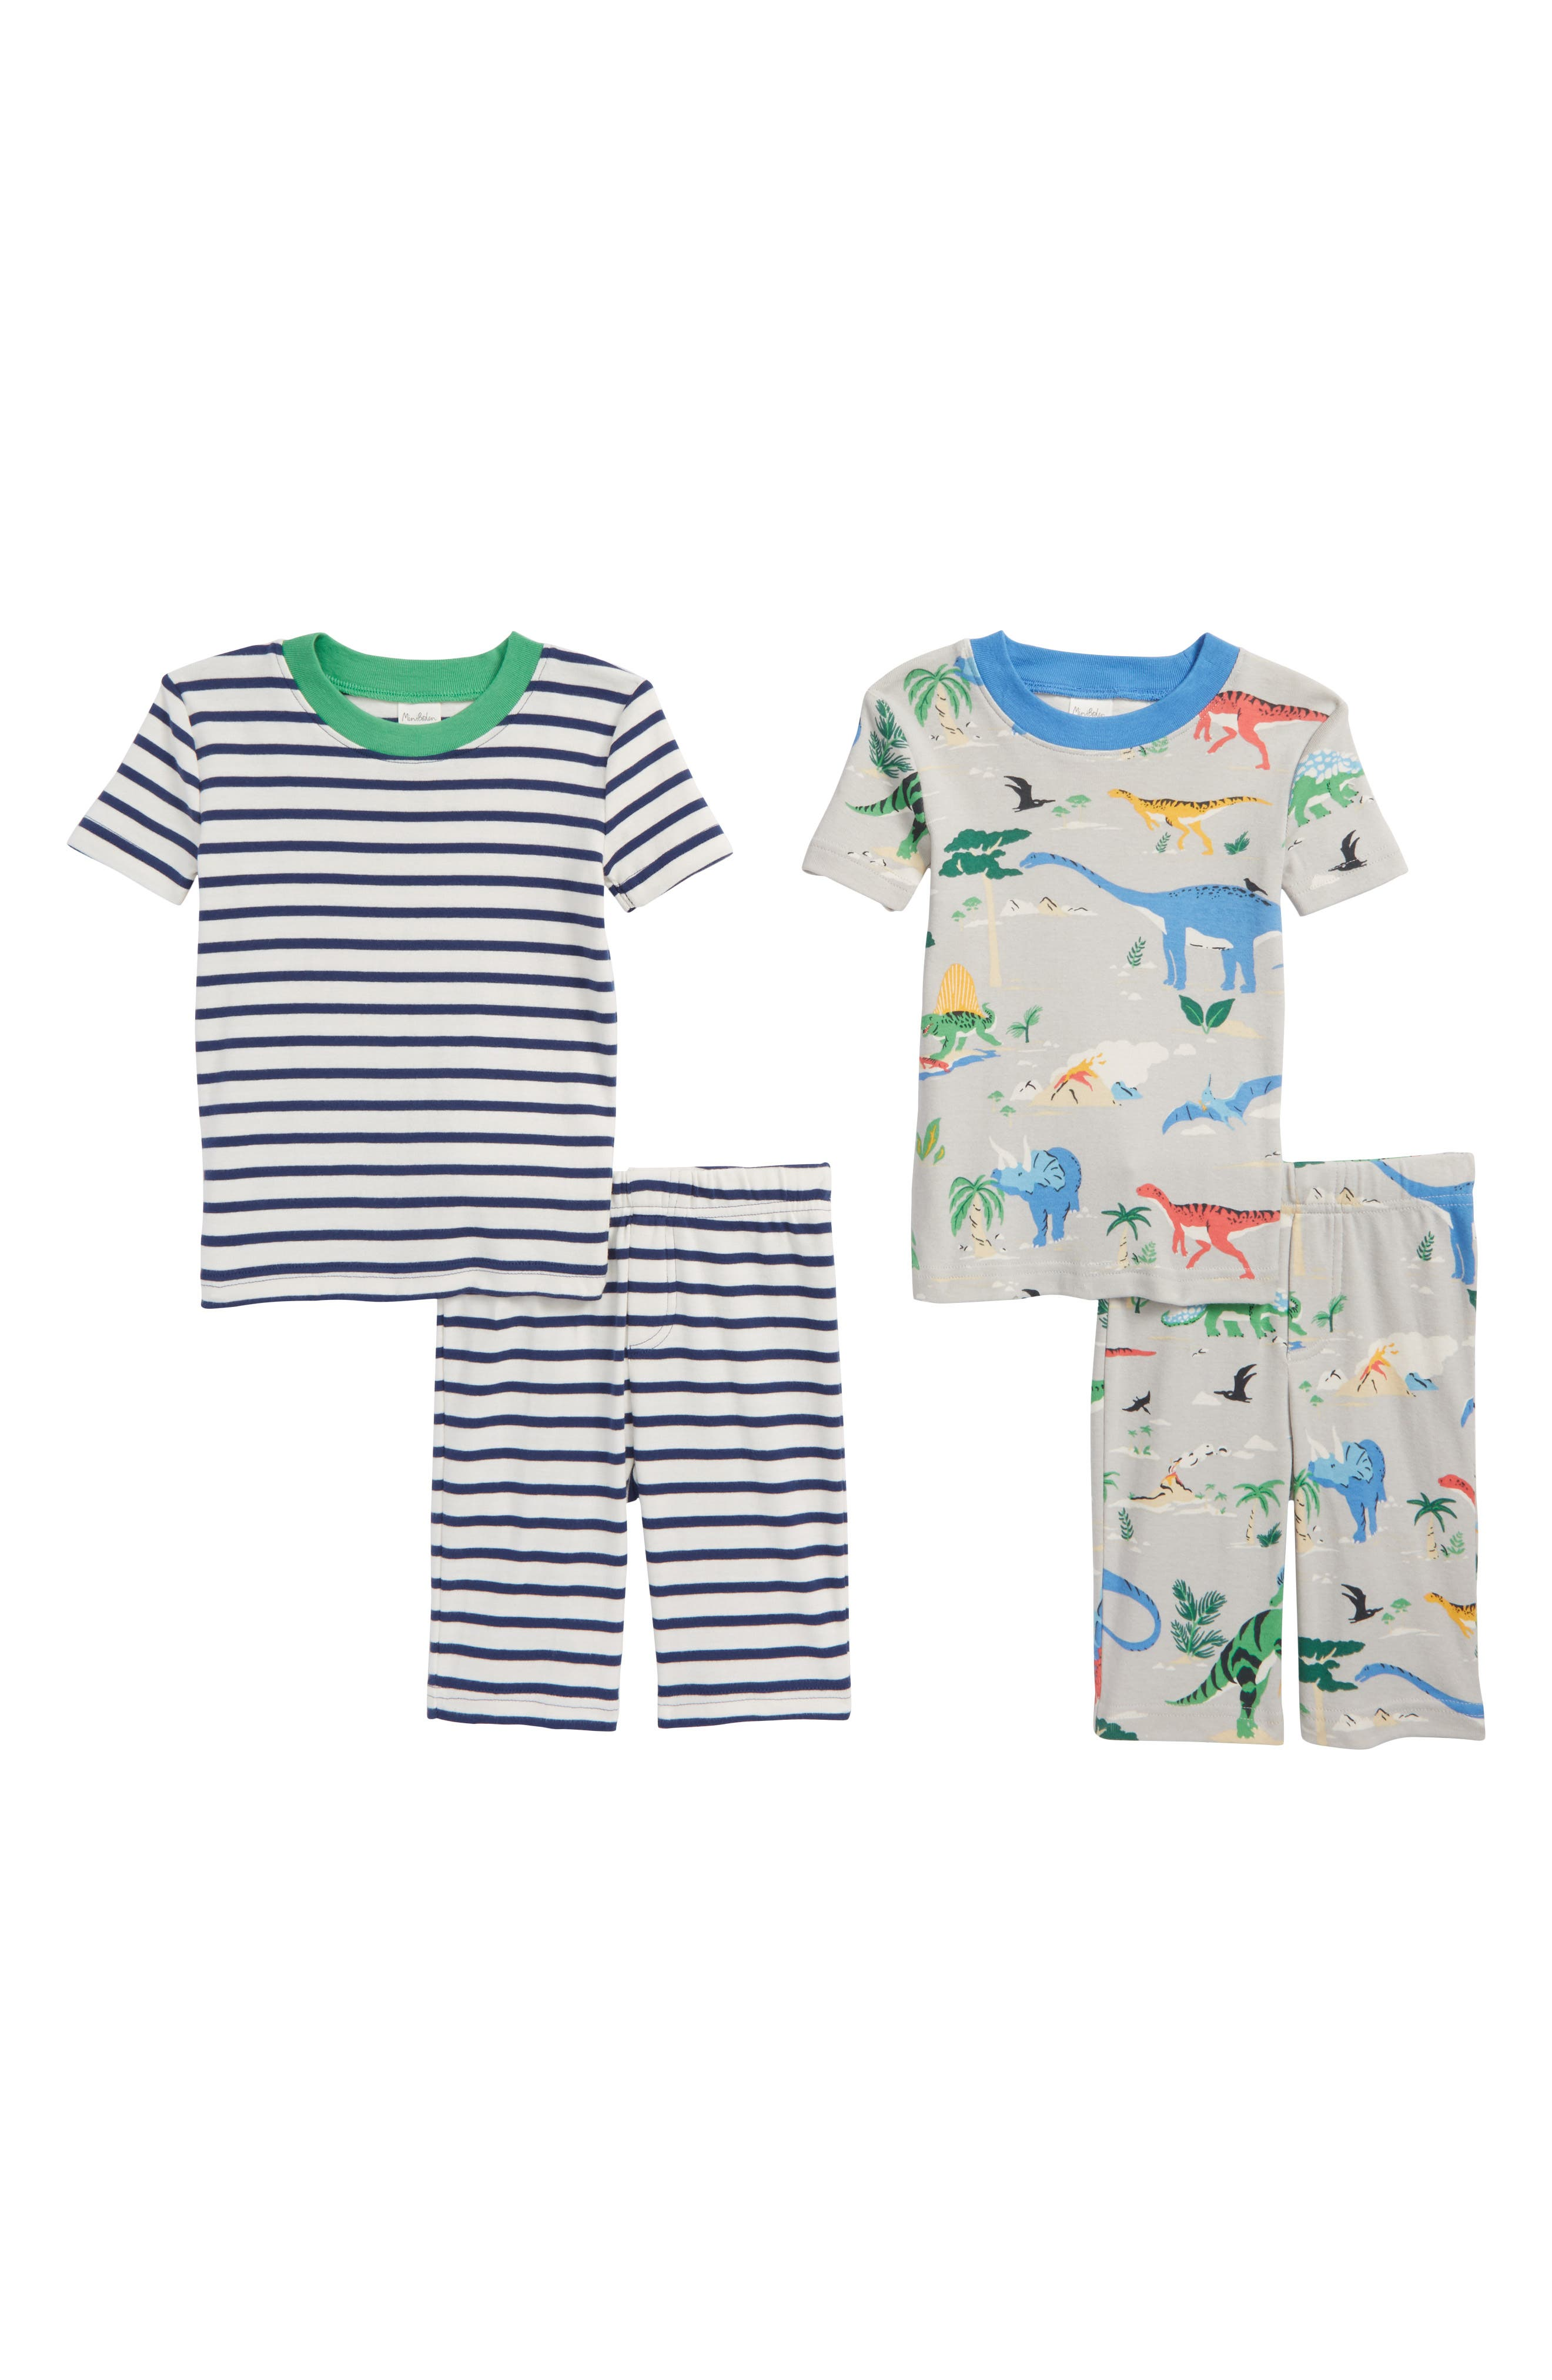 Short John 2-Pack Fitted Two-Piece Pajamas,                         Main,                         color, Shale Grey Scenic Dino